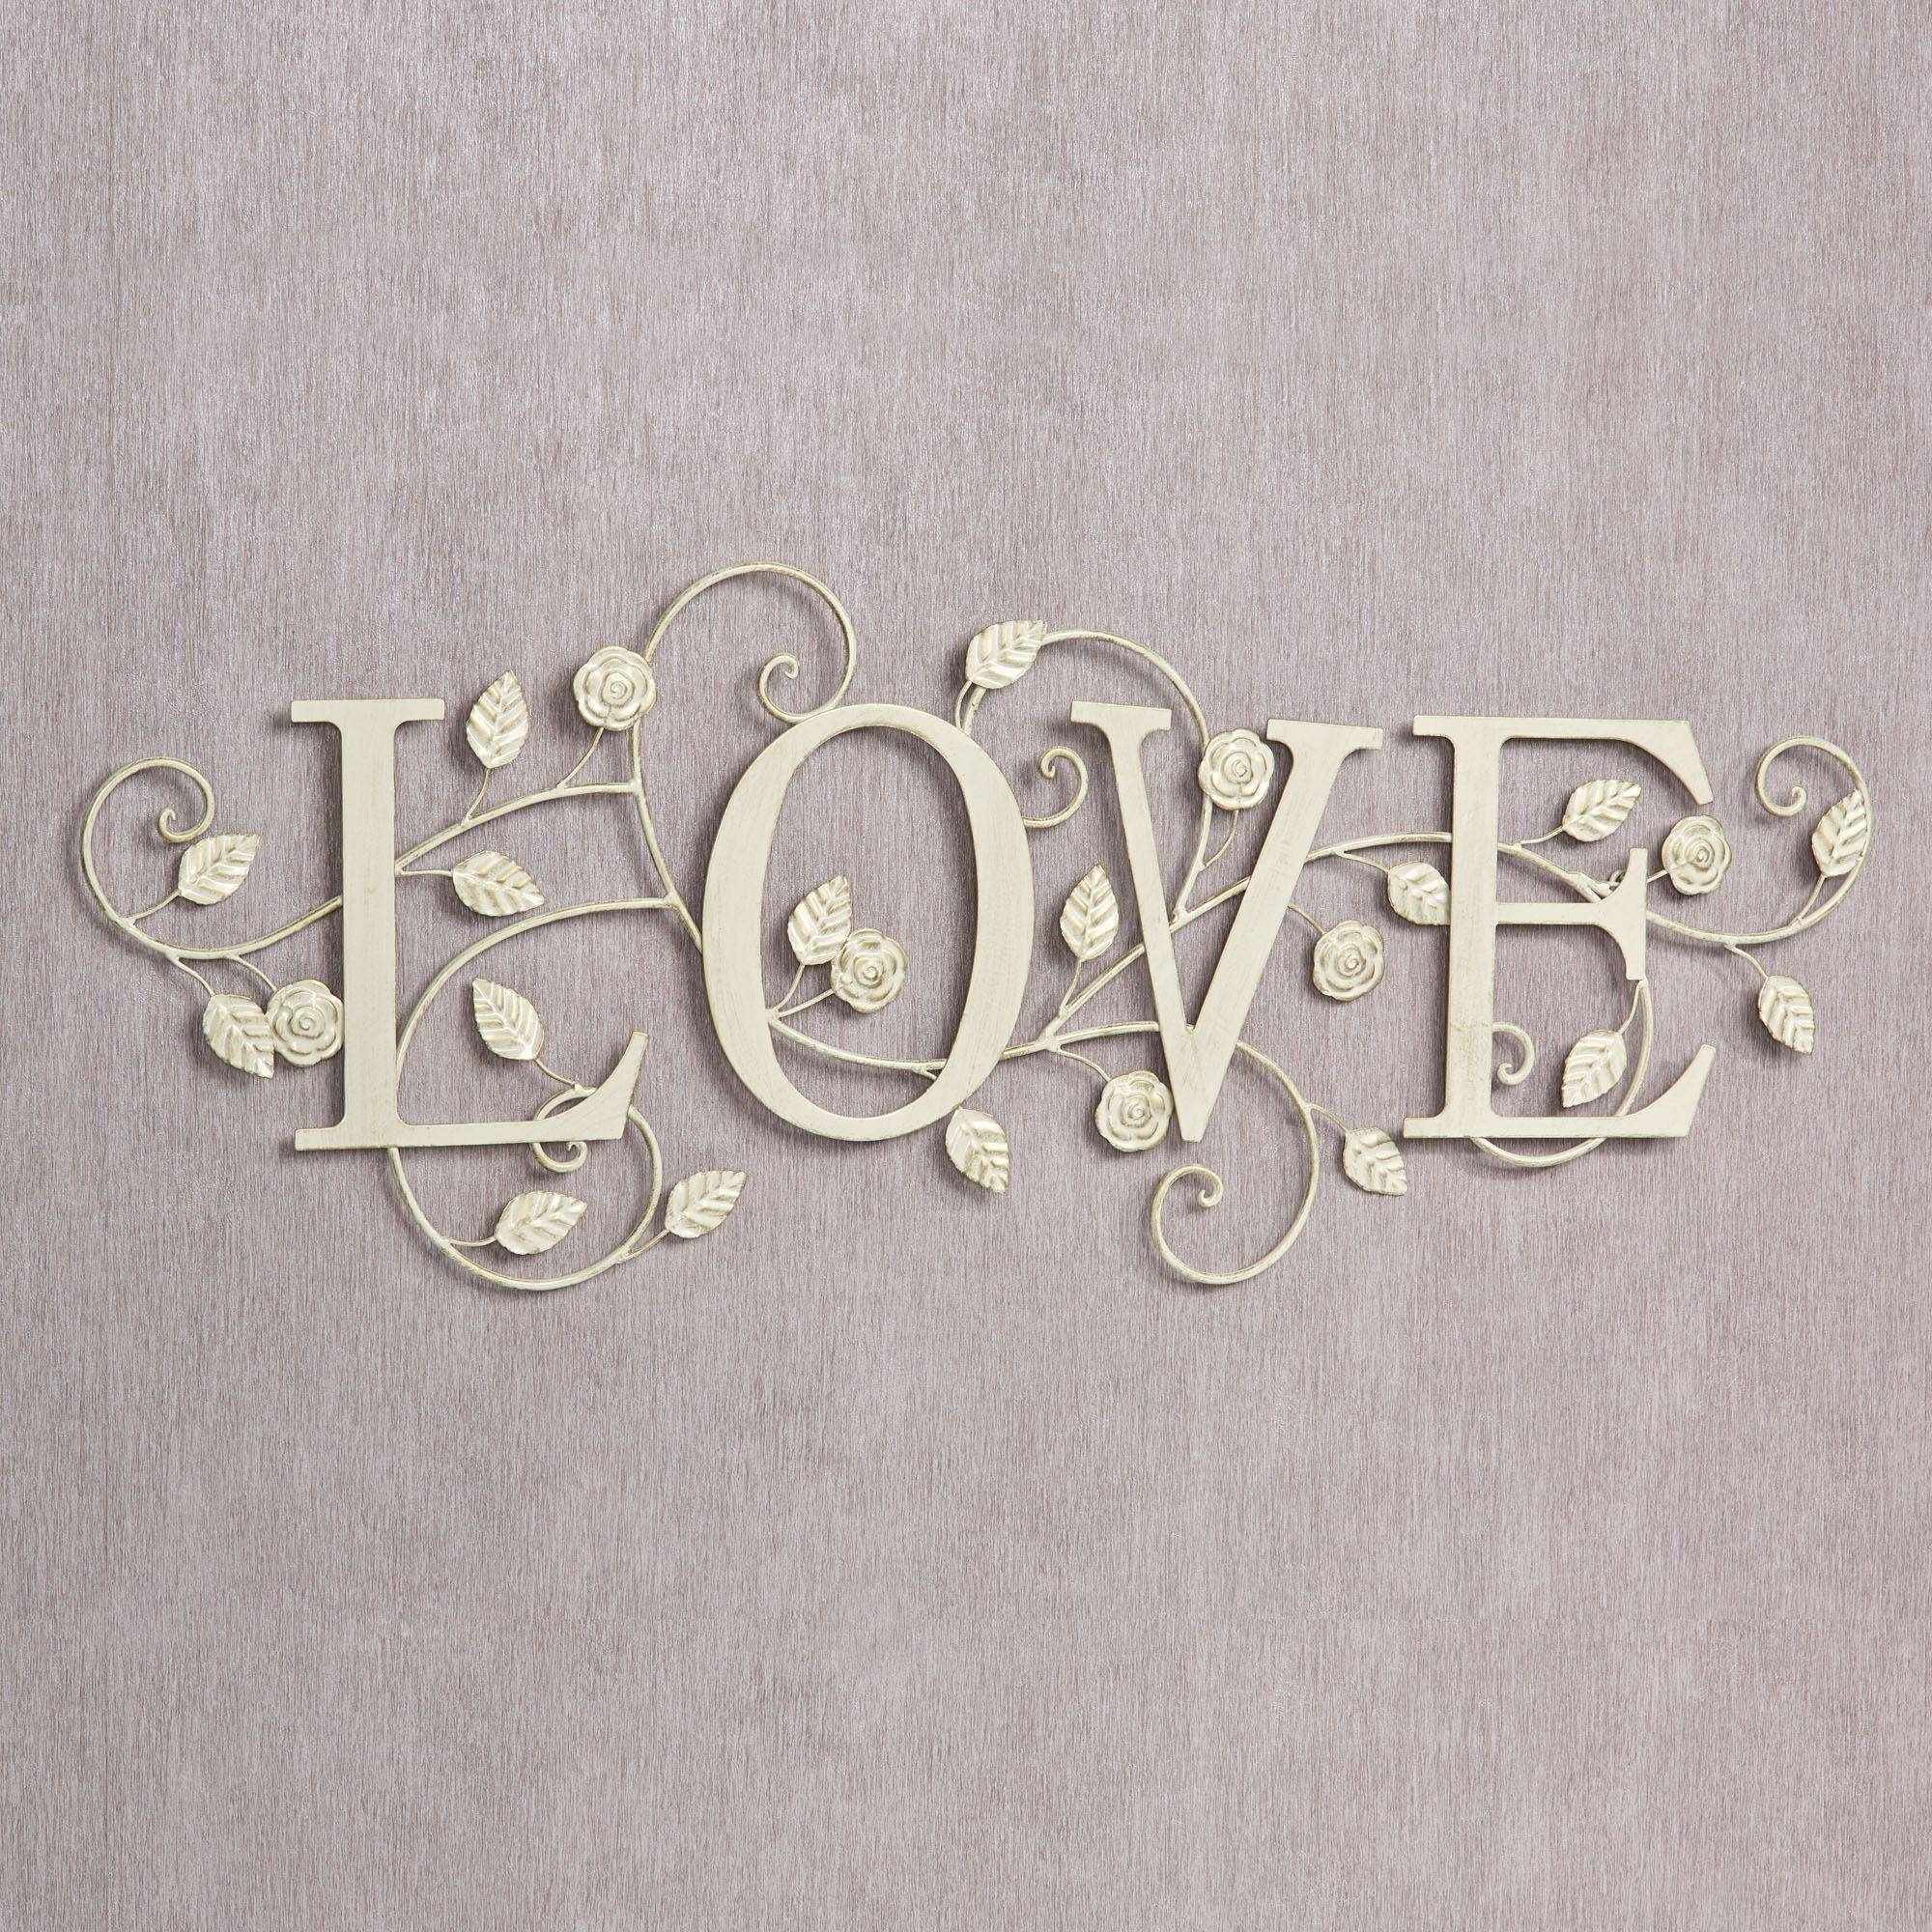 Blooms Of Love Metal Word Wall Art Intended For Most Popular Metal Wall Art Words (View 2 of 20)